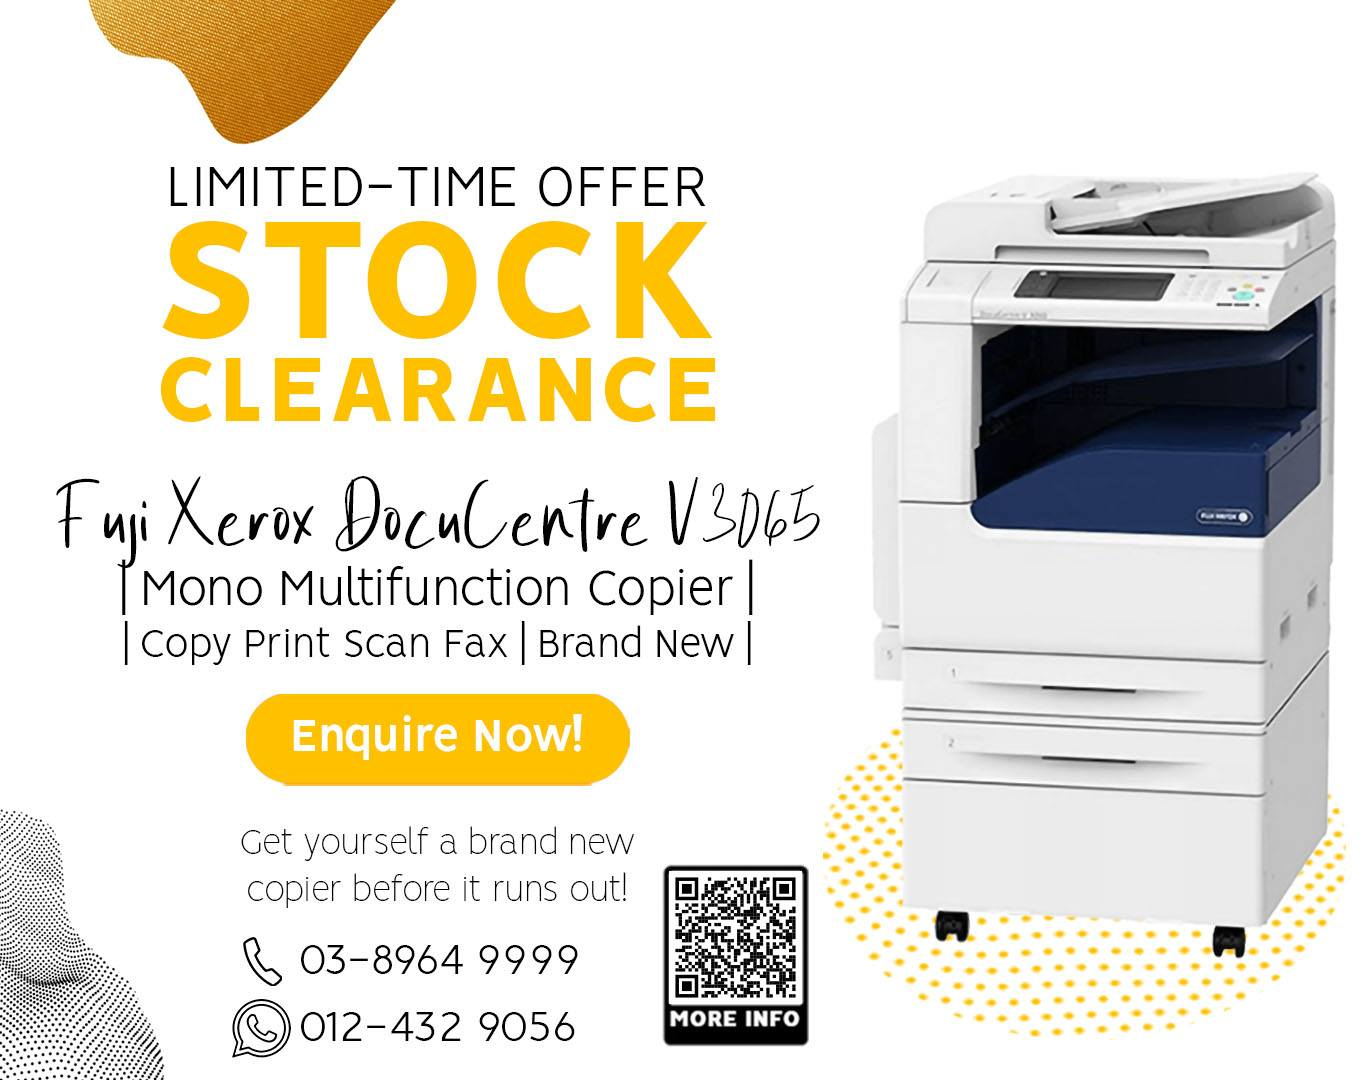 𝐒𝐓𝐎𝐂𝐊 𝐂𝐋𝐄𝐀𝐑𝐀𝐍𝐂𝐄 FUJI XEROX  multifunction copier for rent